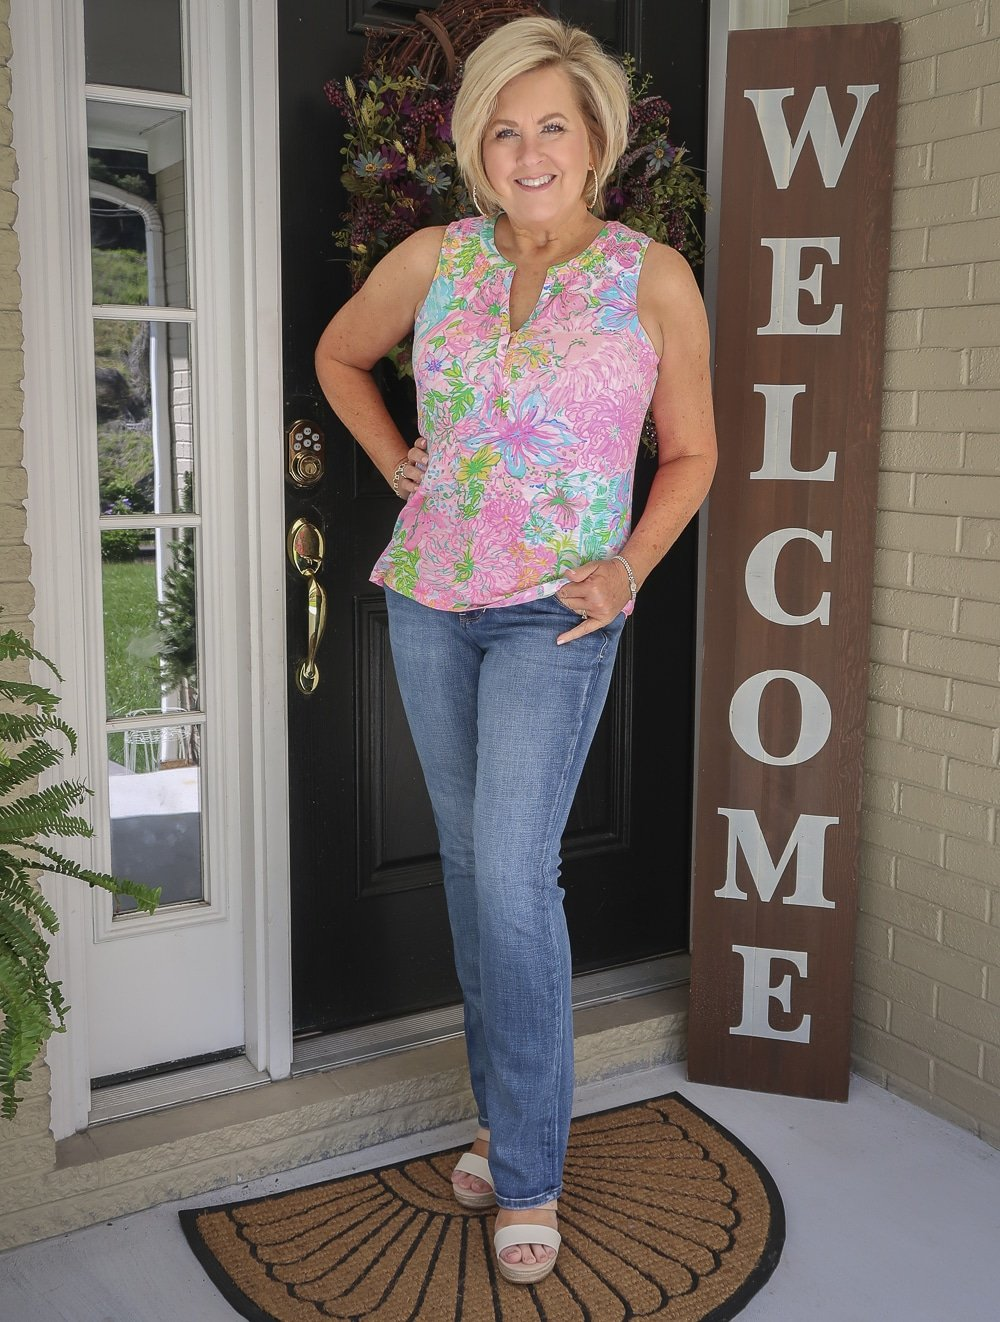 Fashion Blogger 50 Is Not Old is wearing a Lilly Pulitzer top with bootcut jeans and espadrille sandals